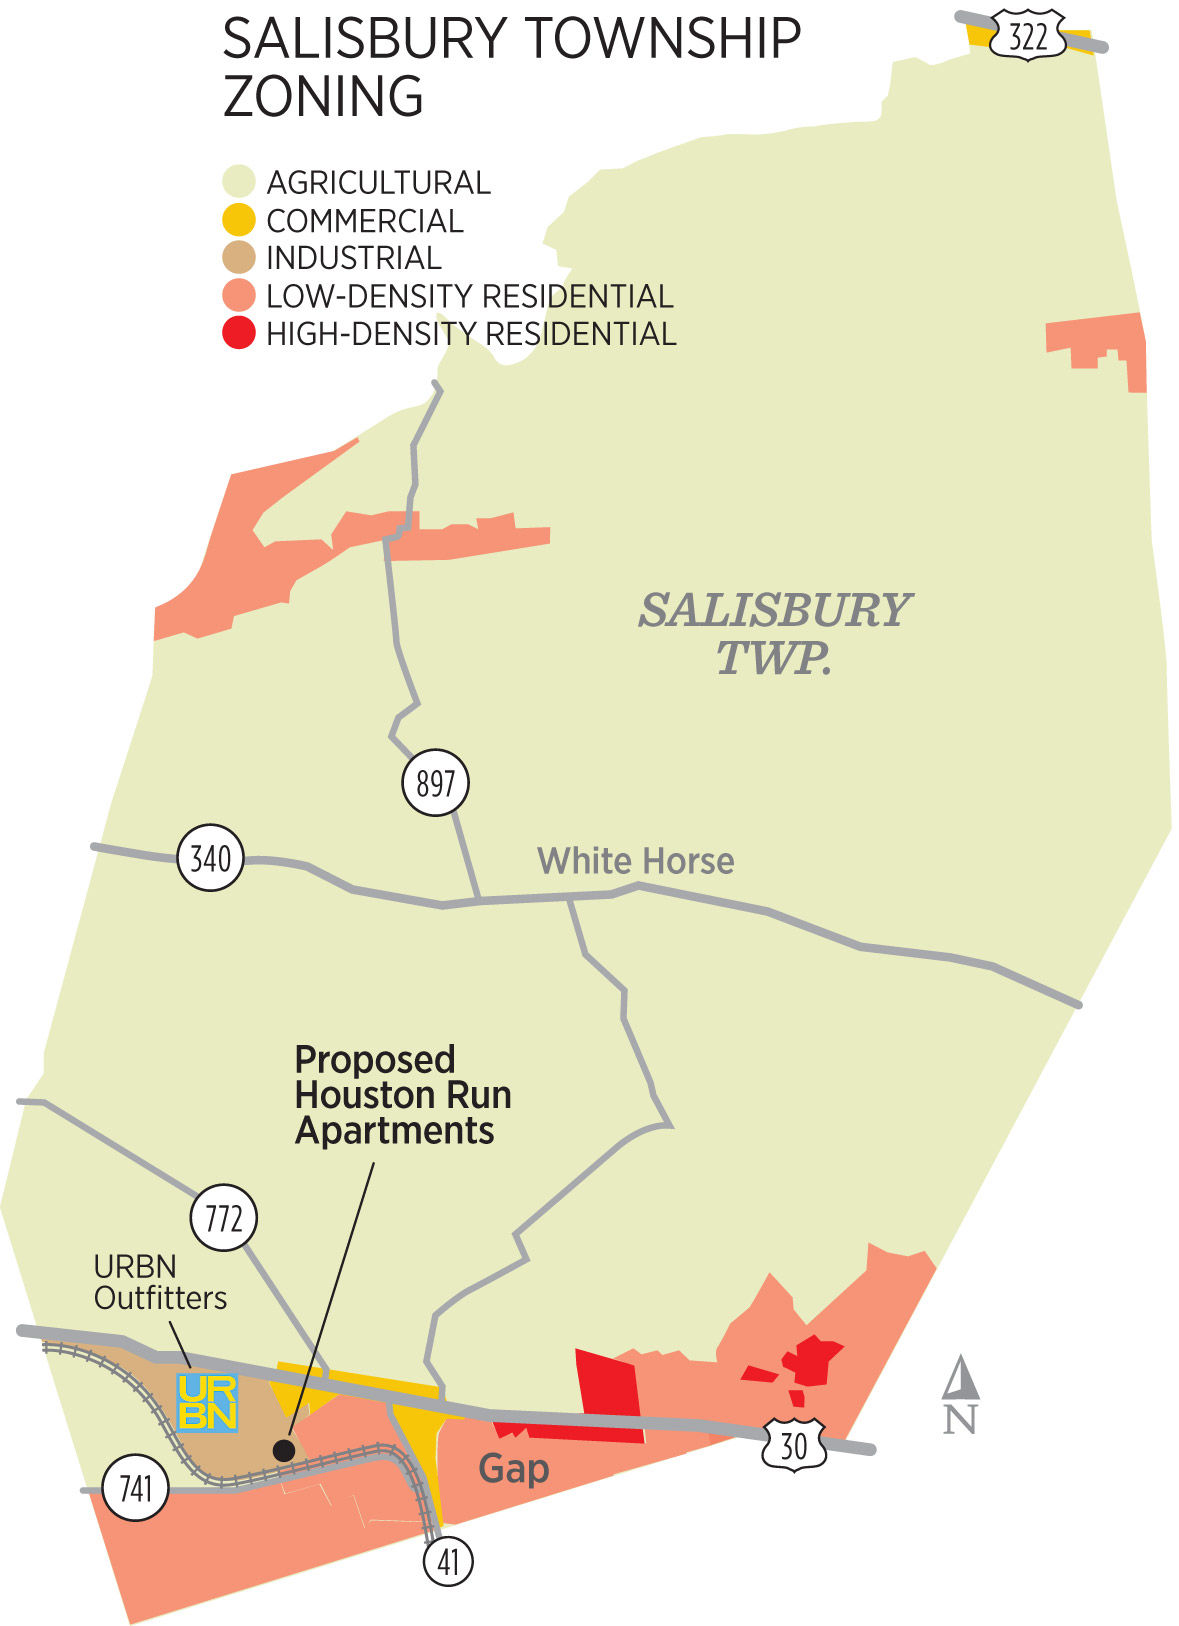 Salisbury Township Denies It Excludes Apartments Points To Land Available In Gap